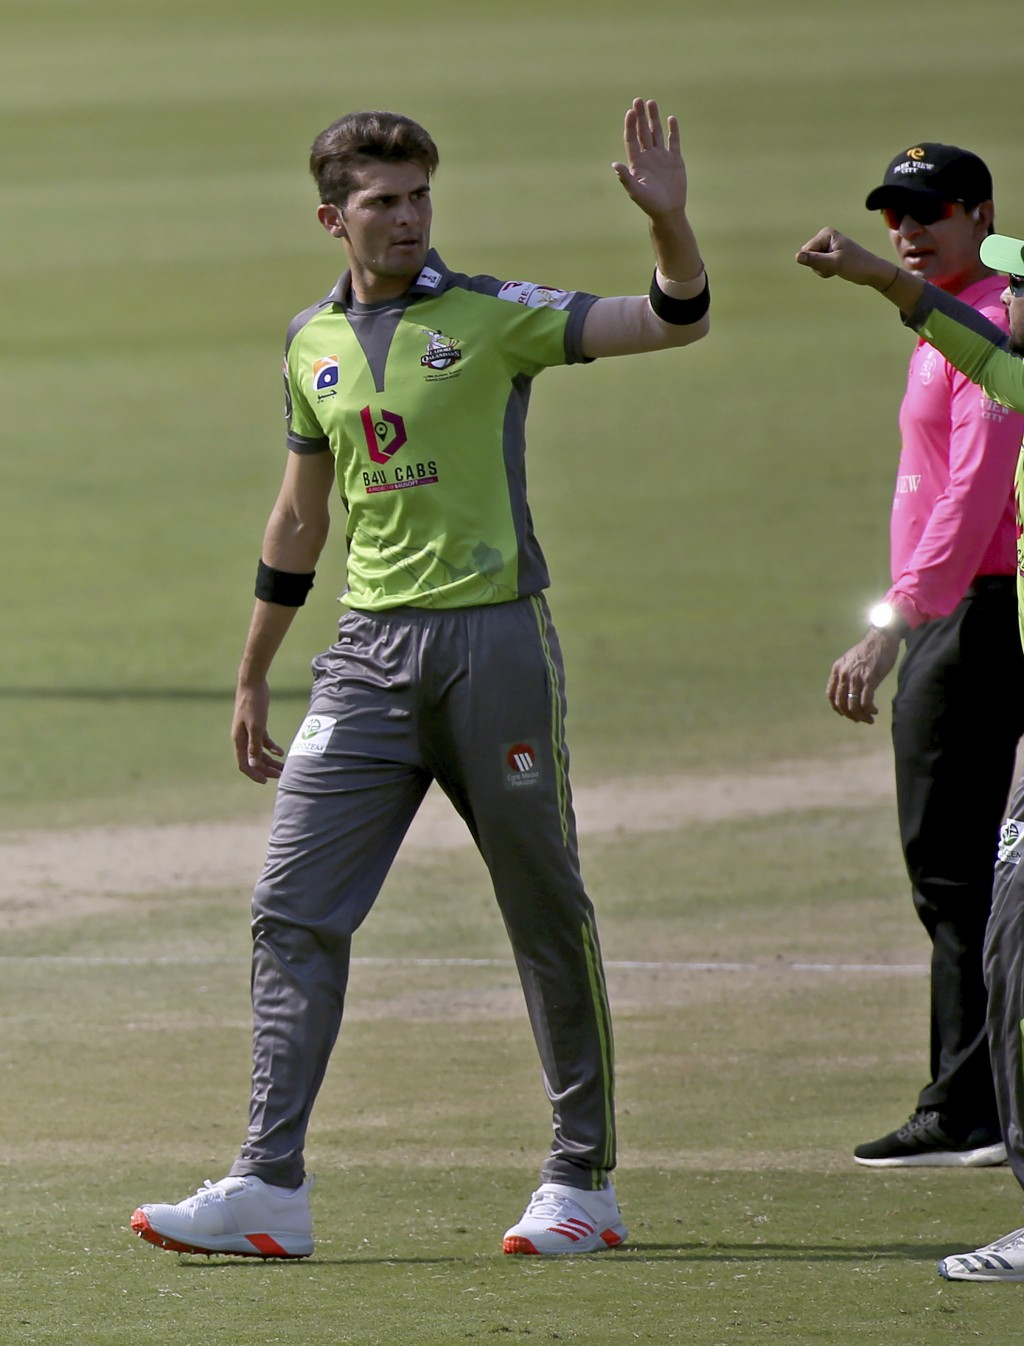 Lahore Qalandars' Shaheen Afridi celebrates after taking the wicket of Peshawar Zalmi's Sherfane Rutherford during a Pakistan Super League T20 cricket...